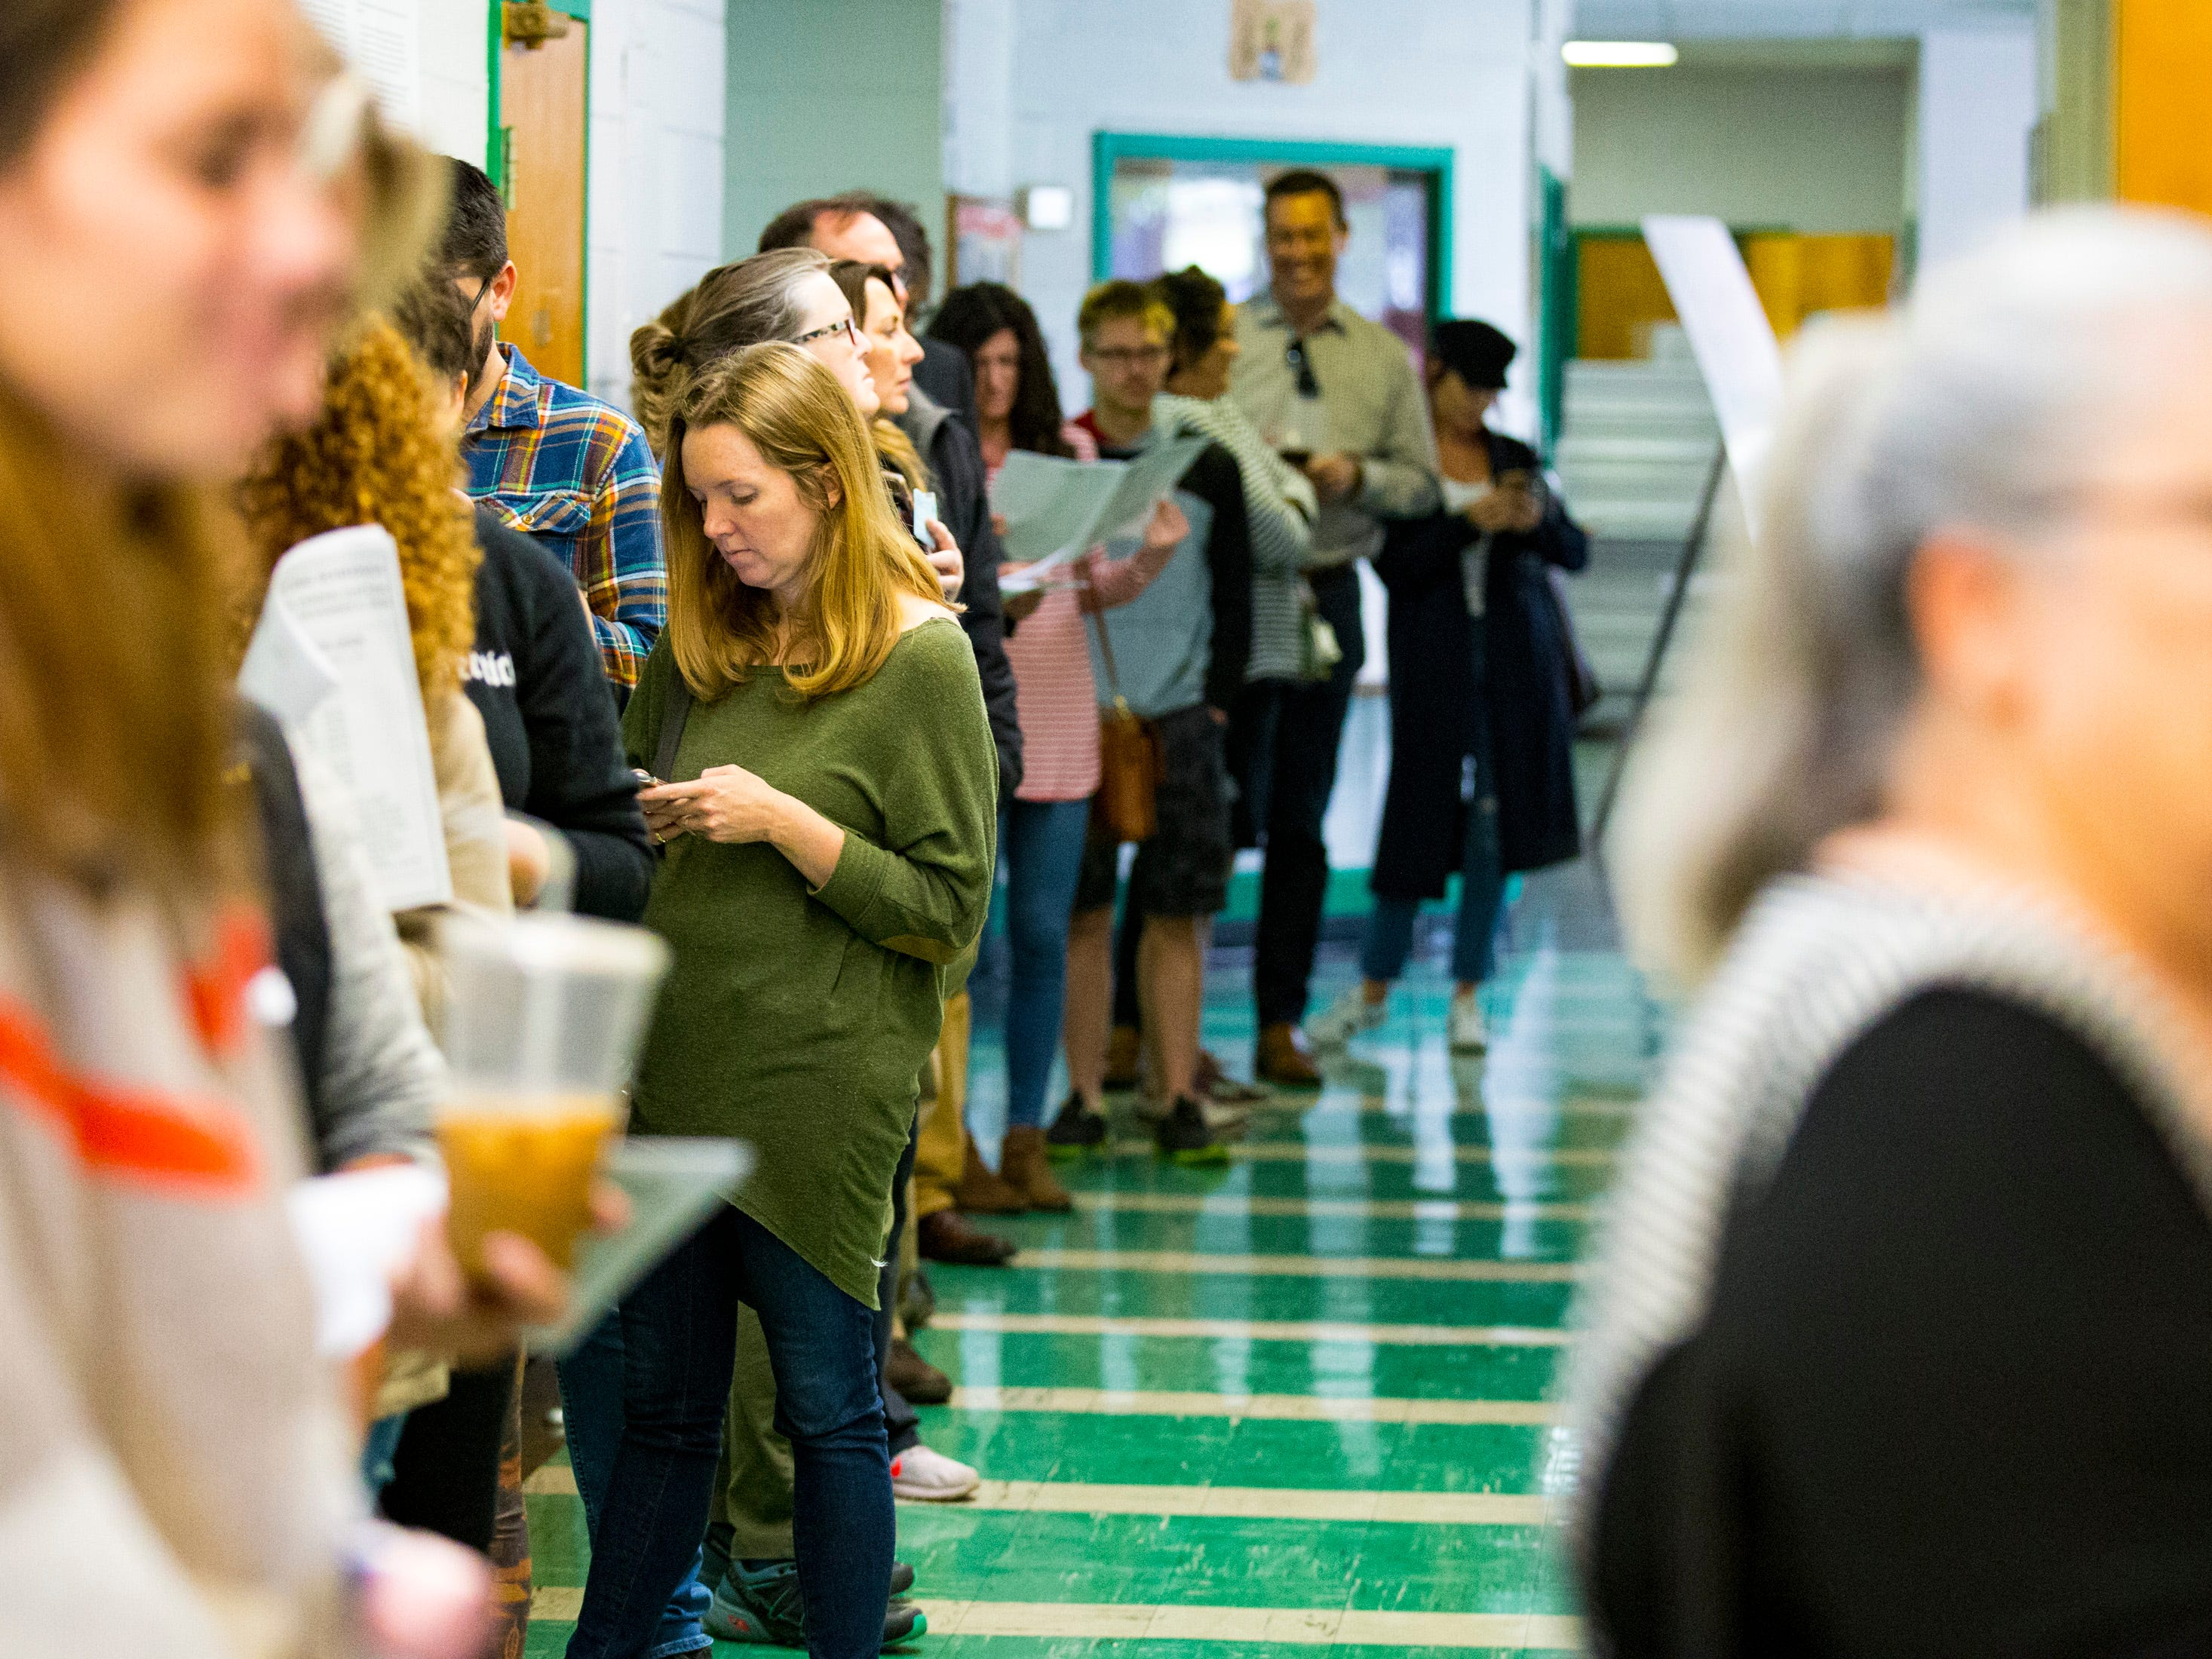 The line to vote stretches down the hallway at the Shelby Park Community Center polling place in Nashville on Tuesday, Nov. 6, 2018.